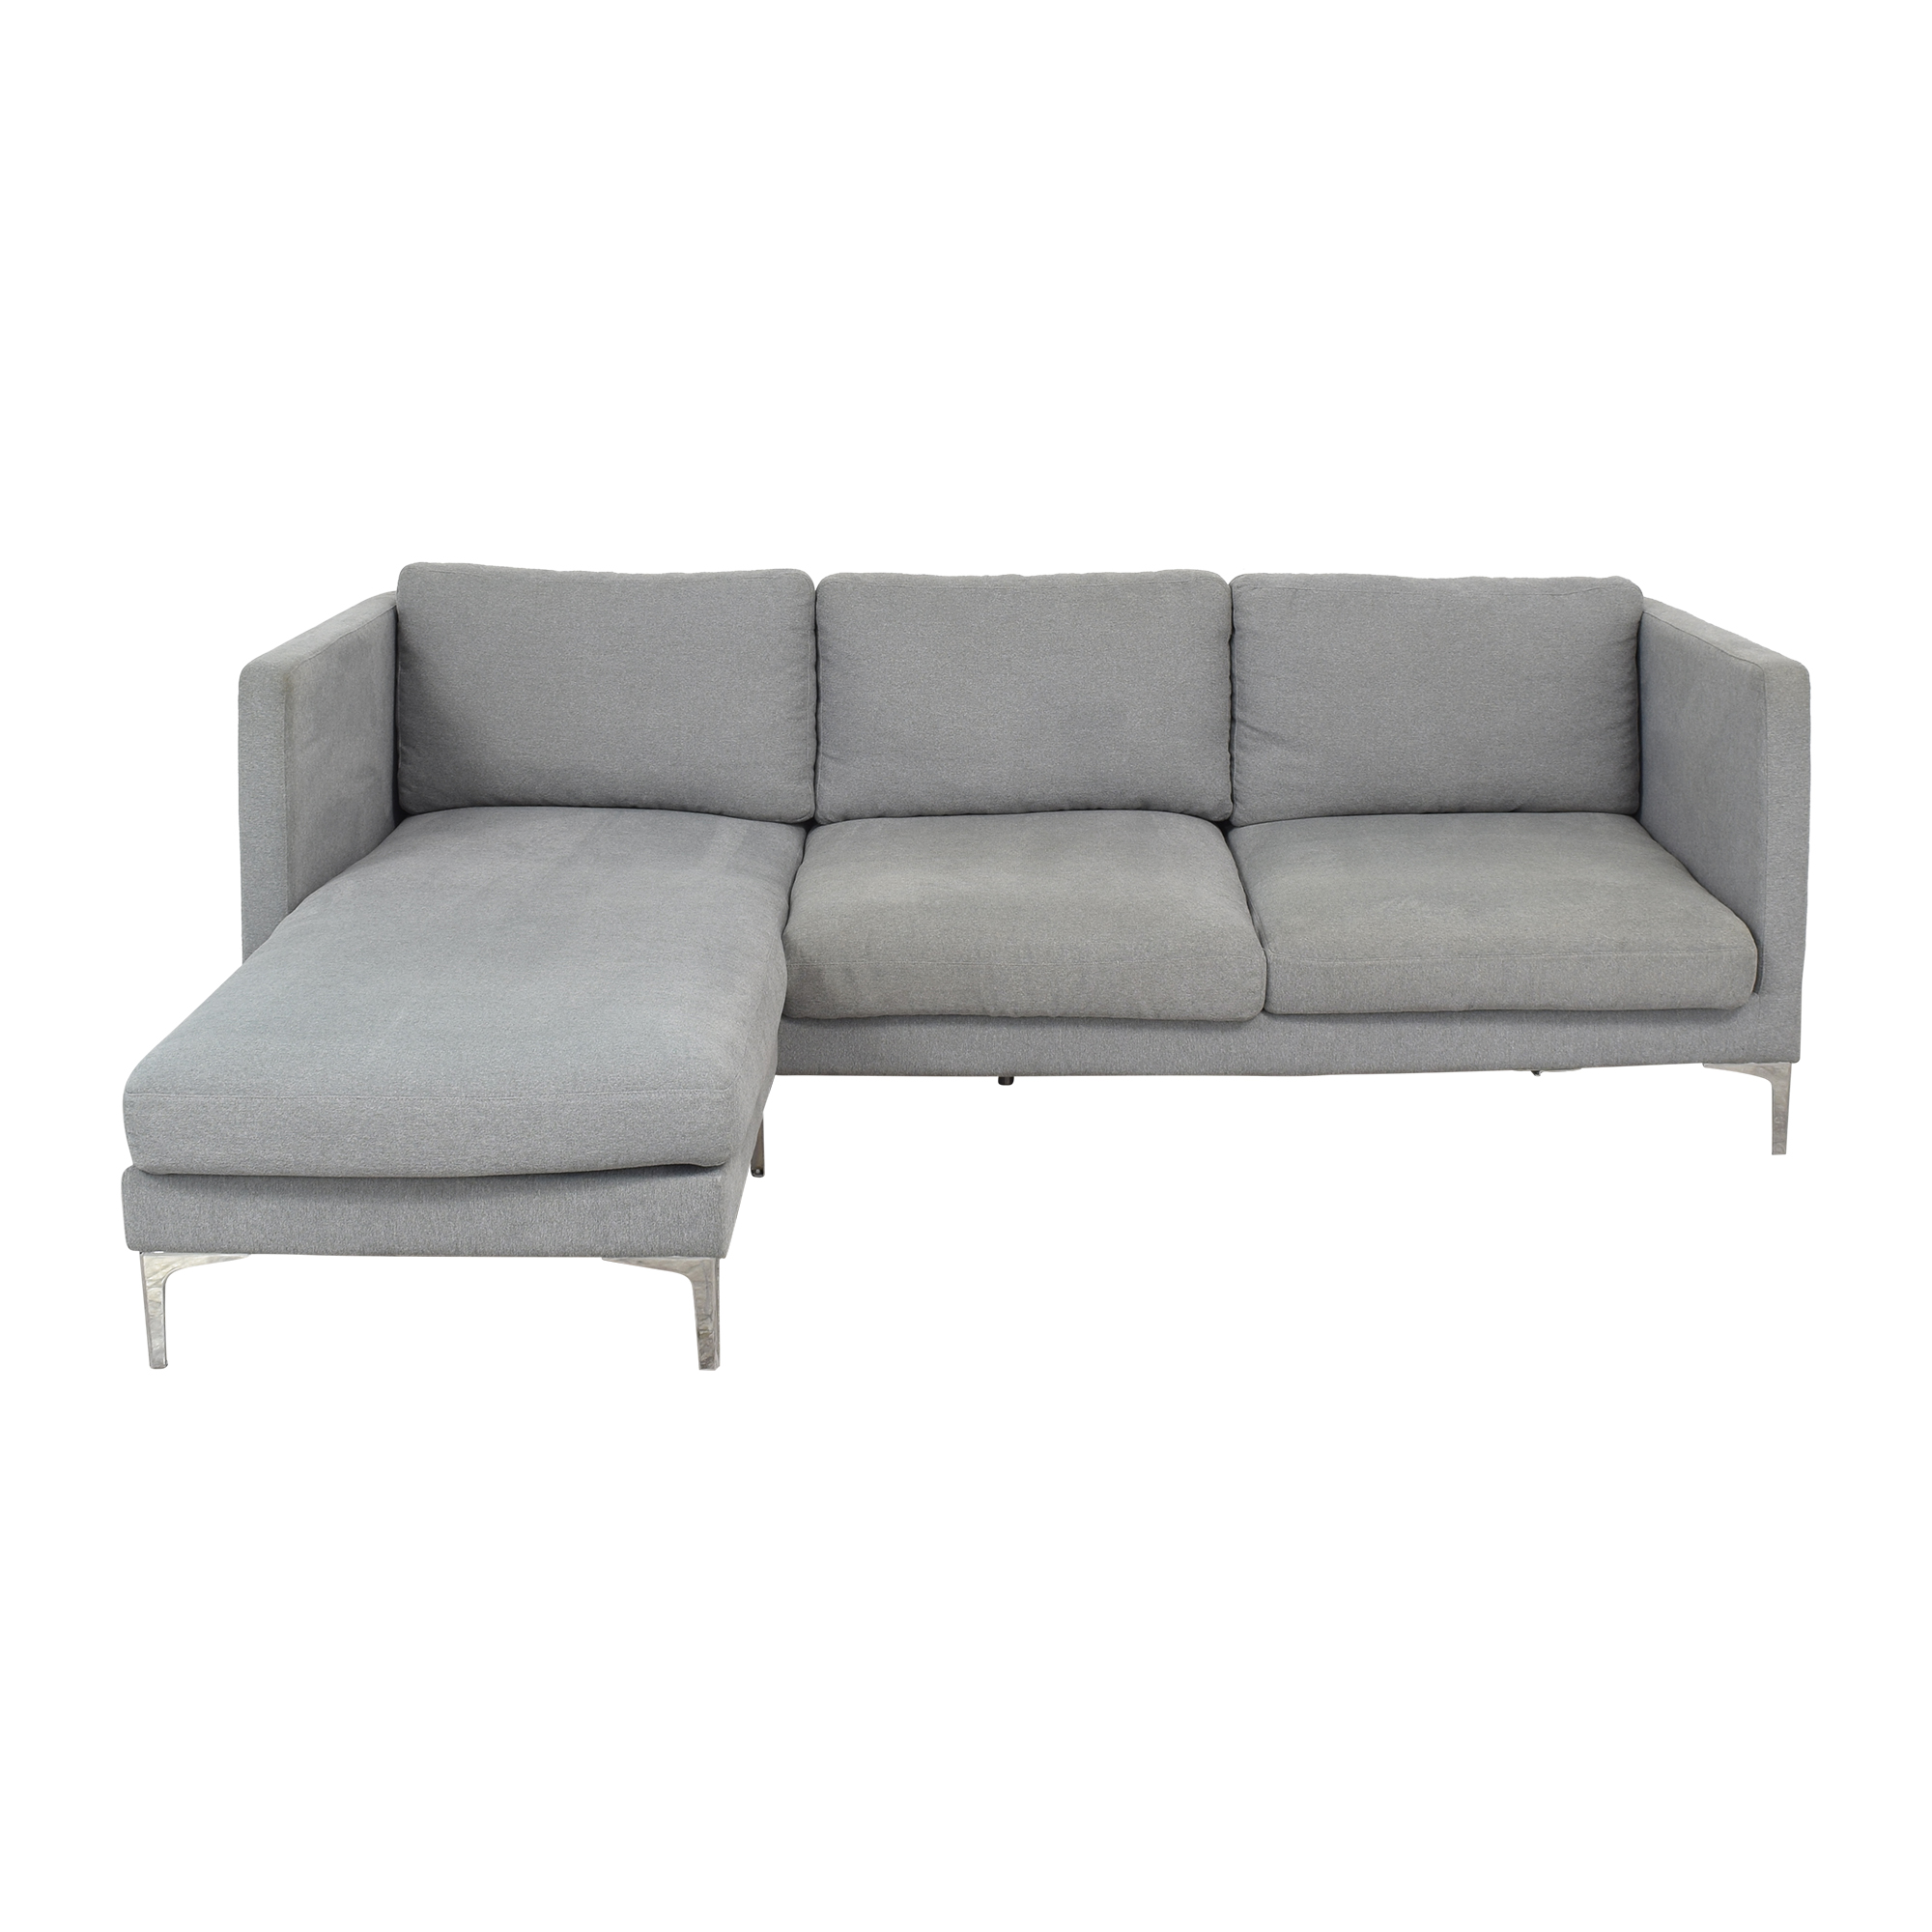 Interior Define Interior Define Oliver Sectional dimensions